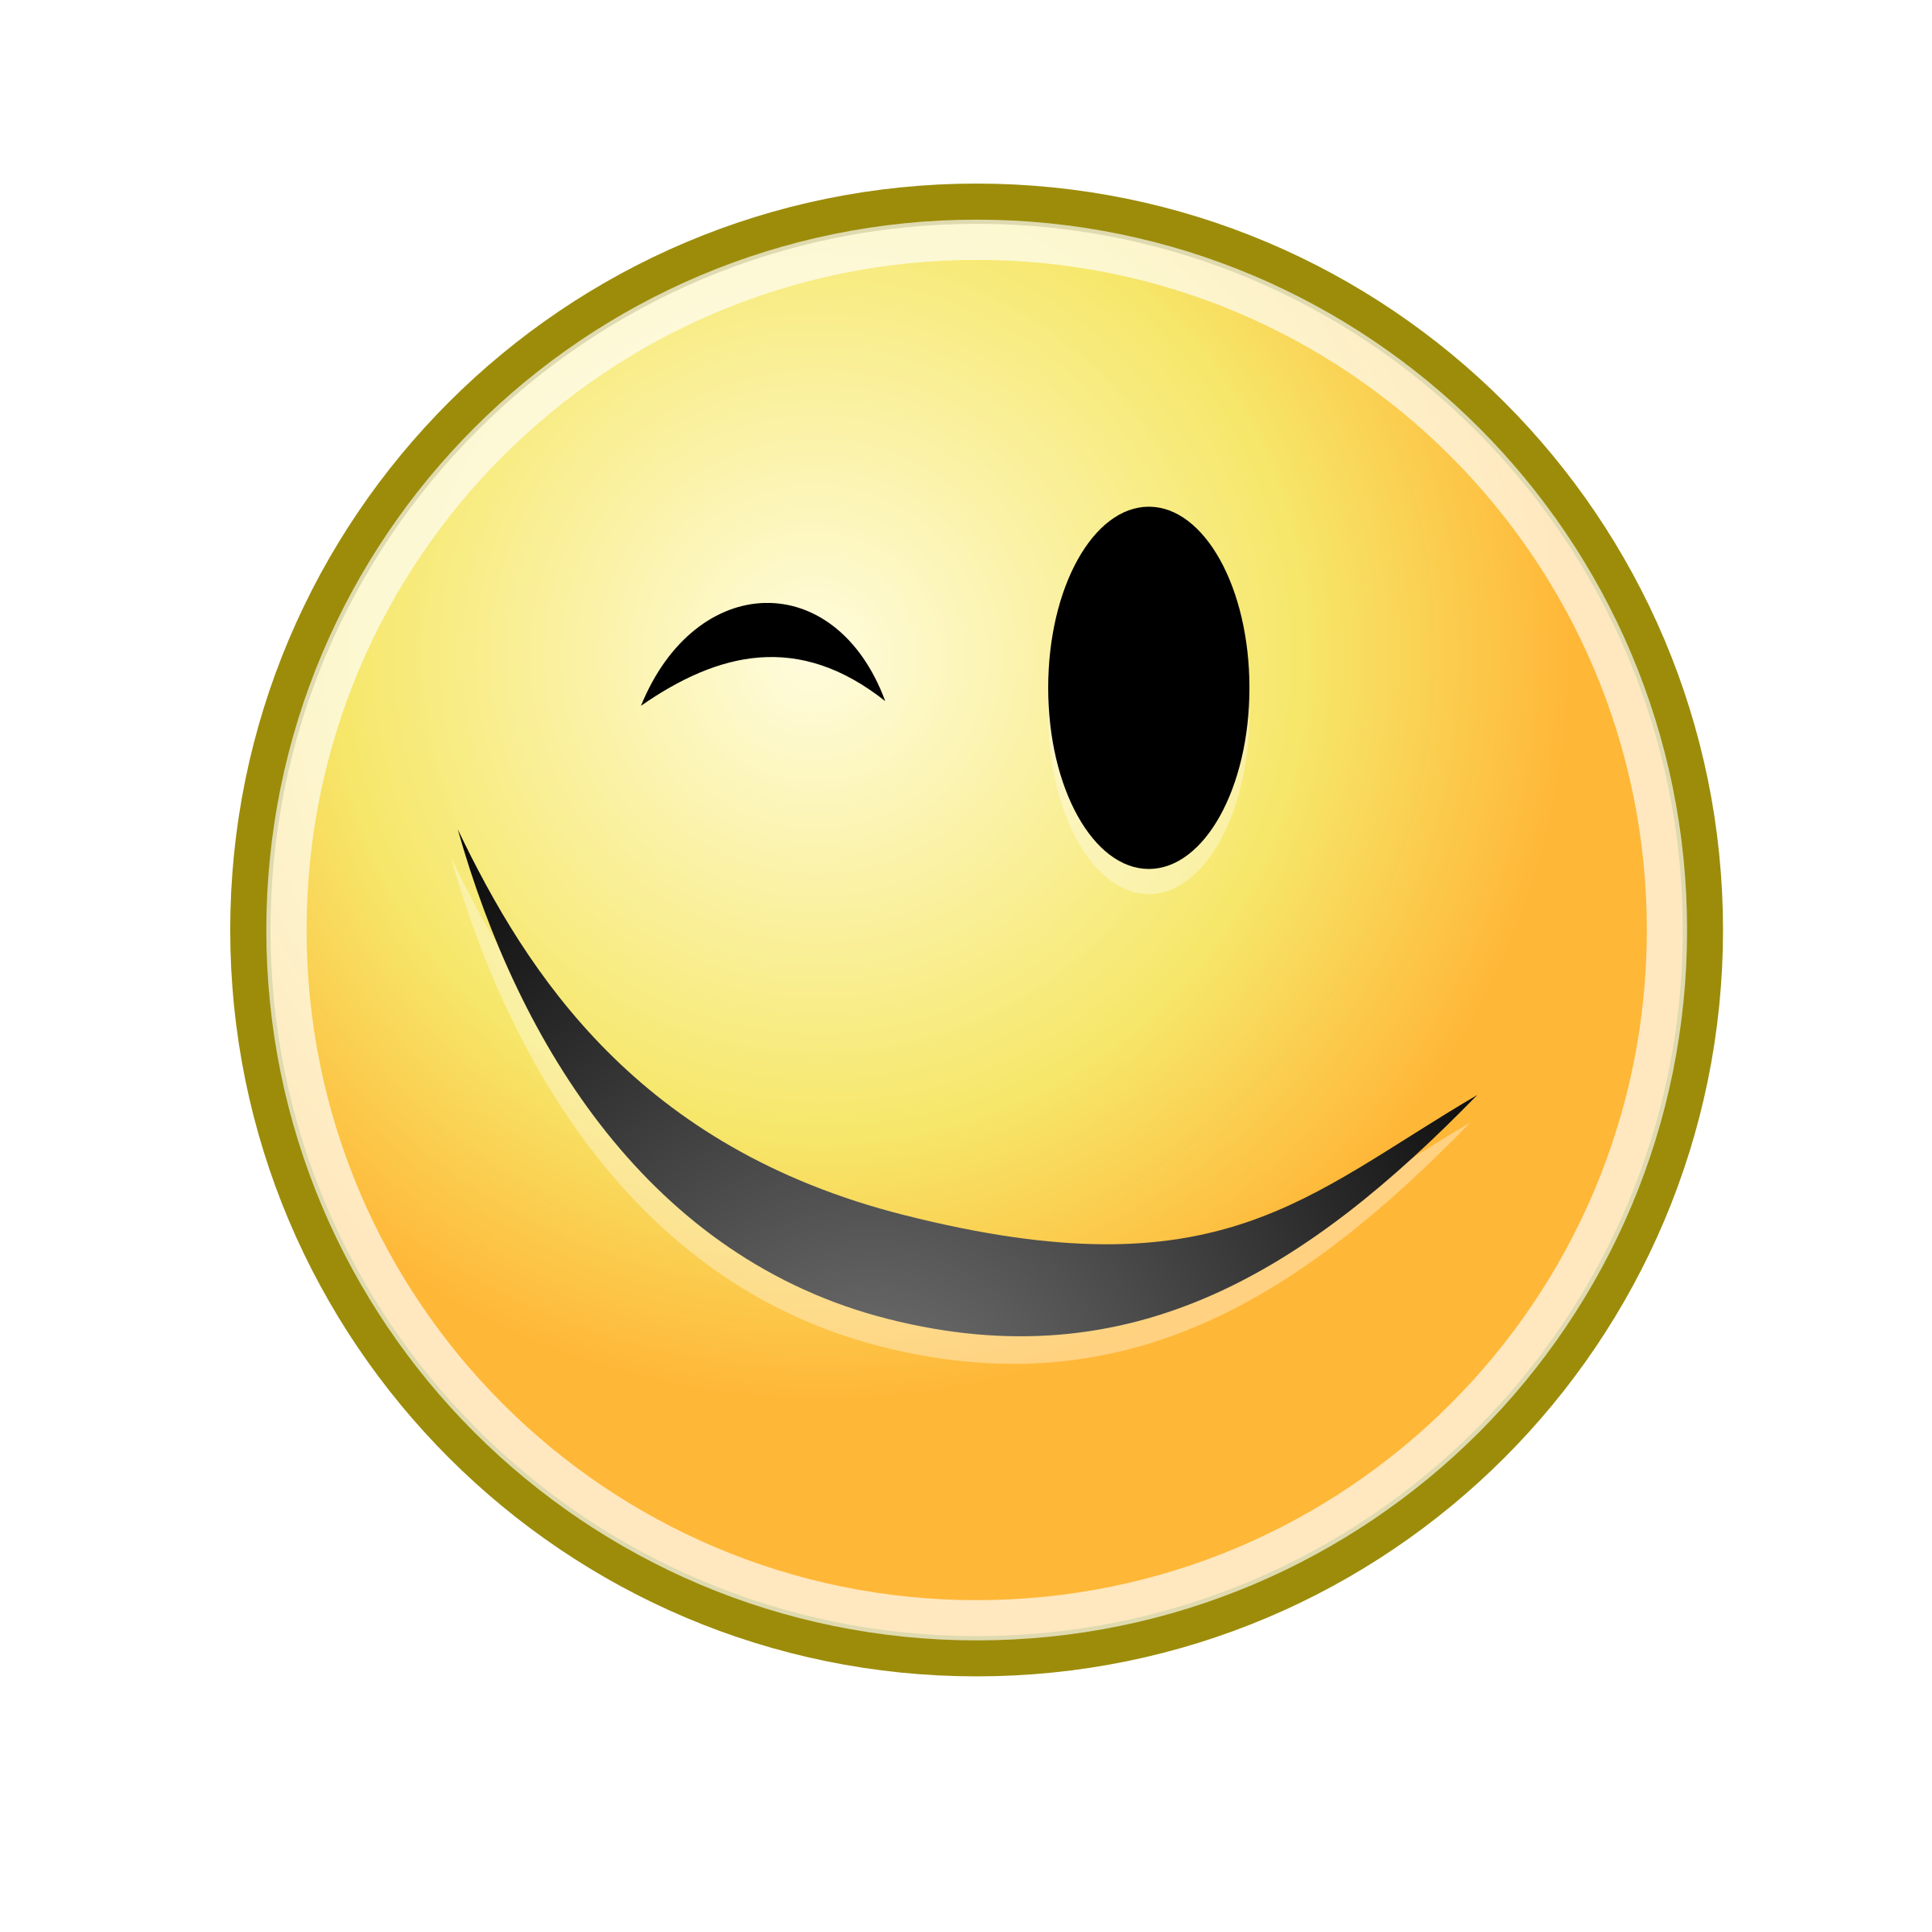 Smiley clipart winking. Wink yellow big image